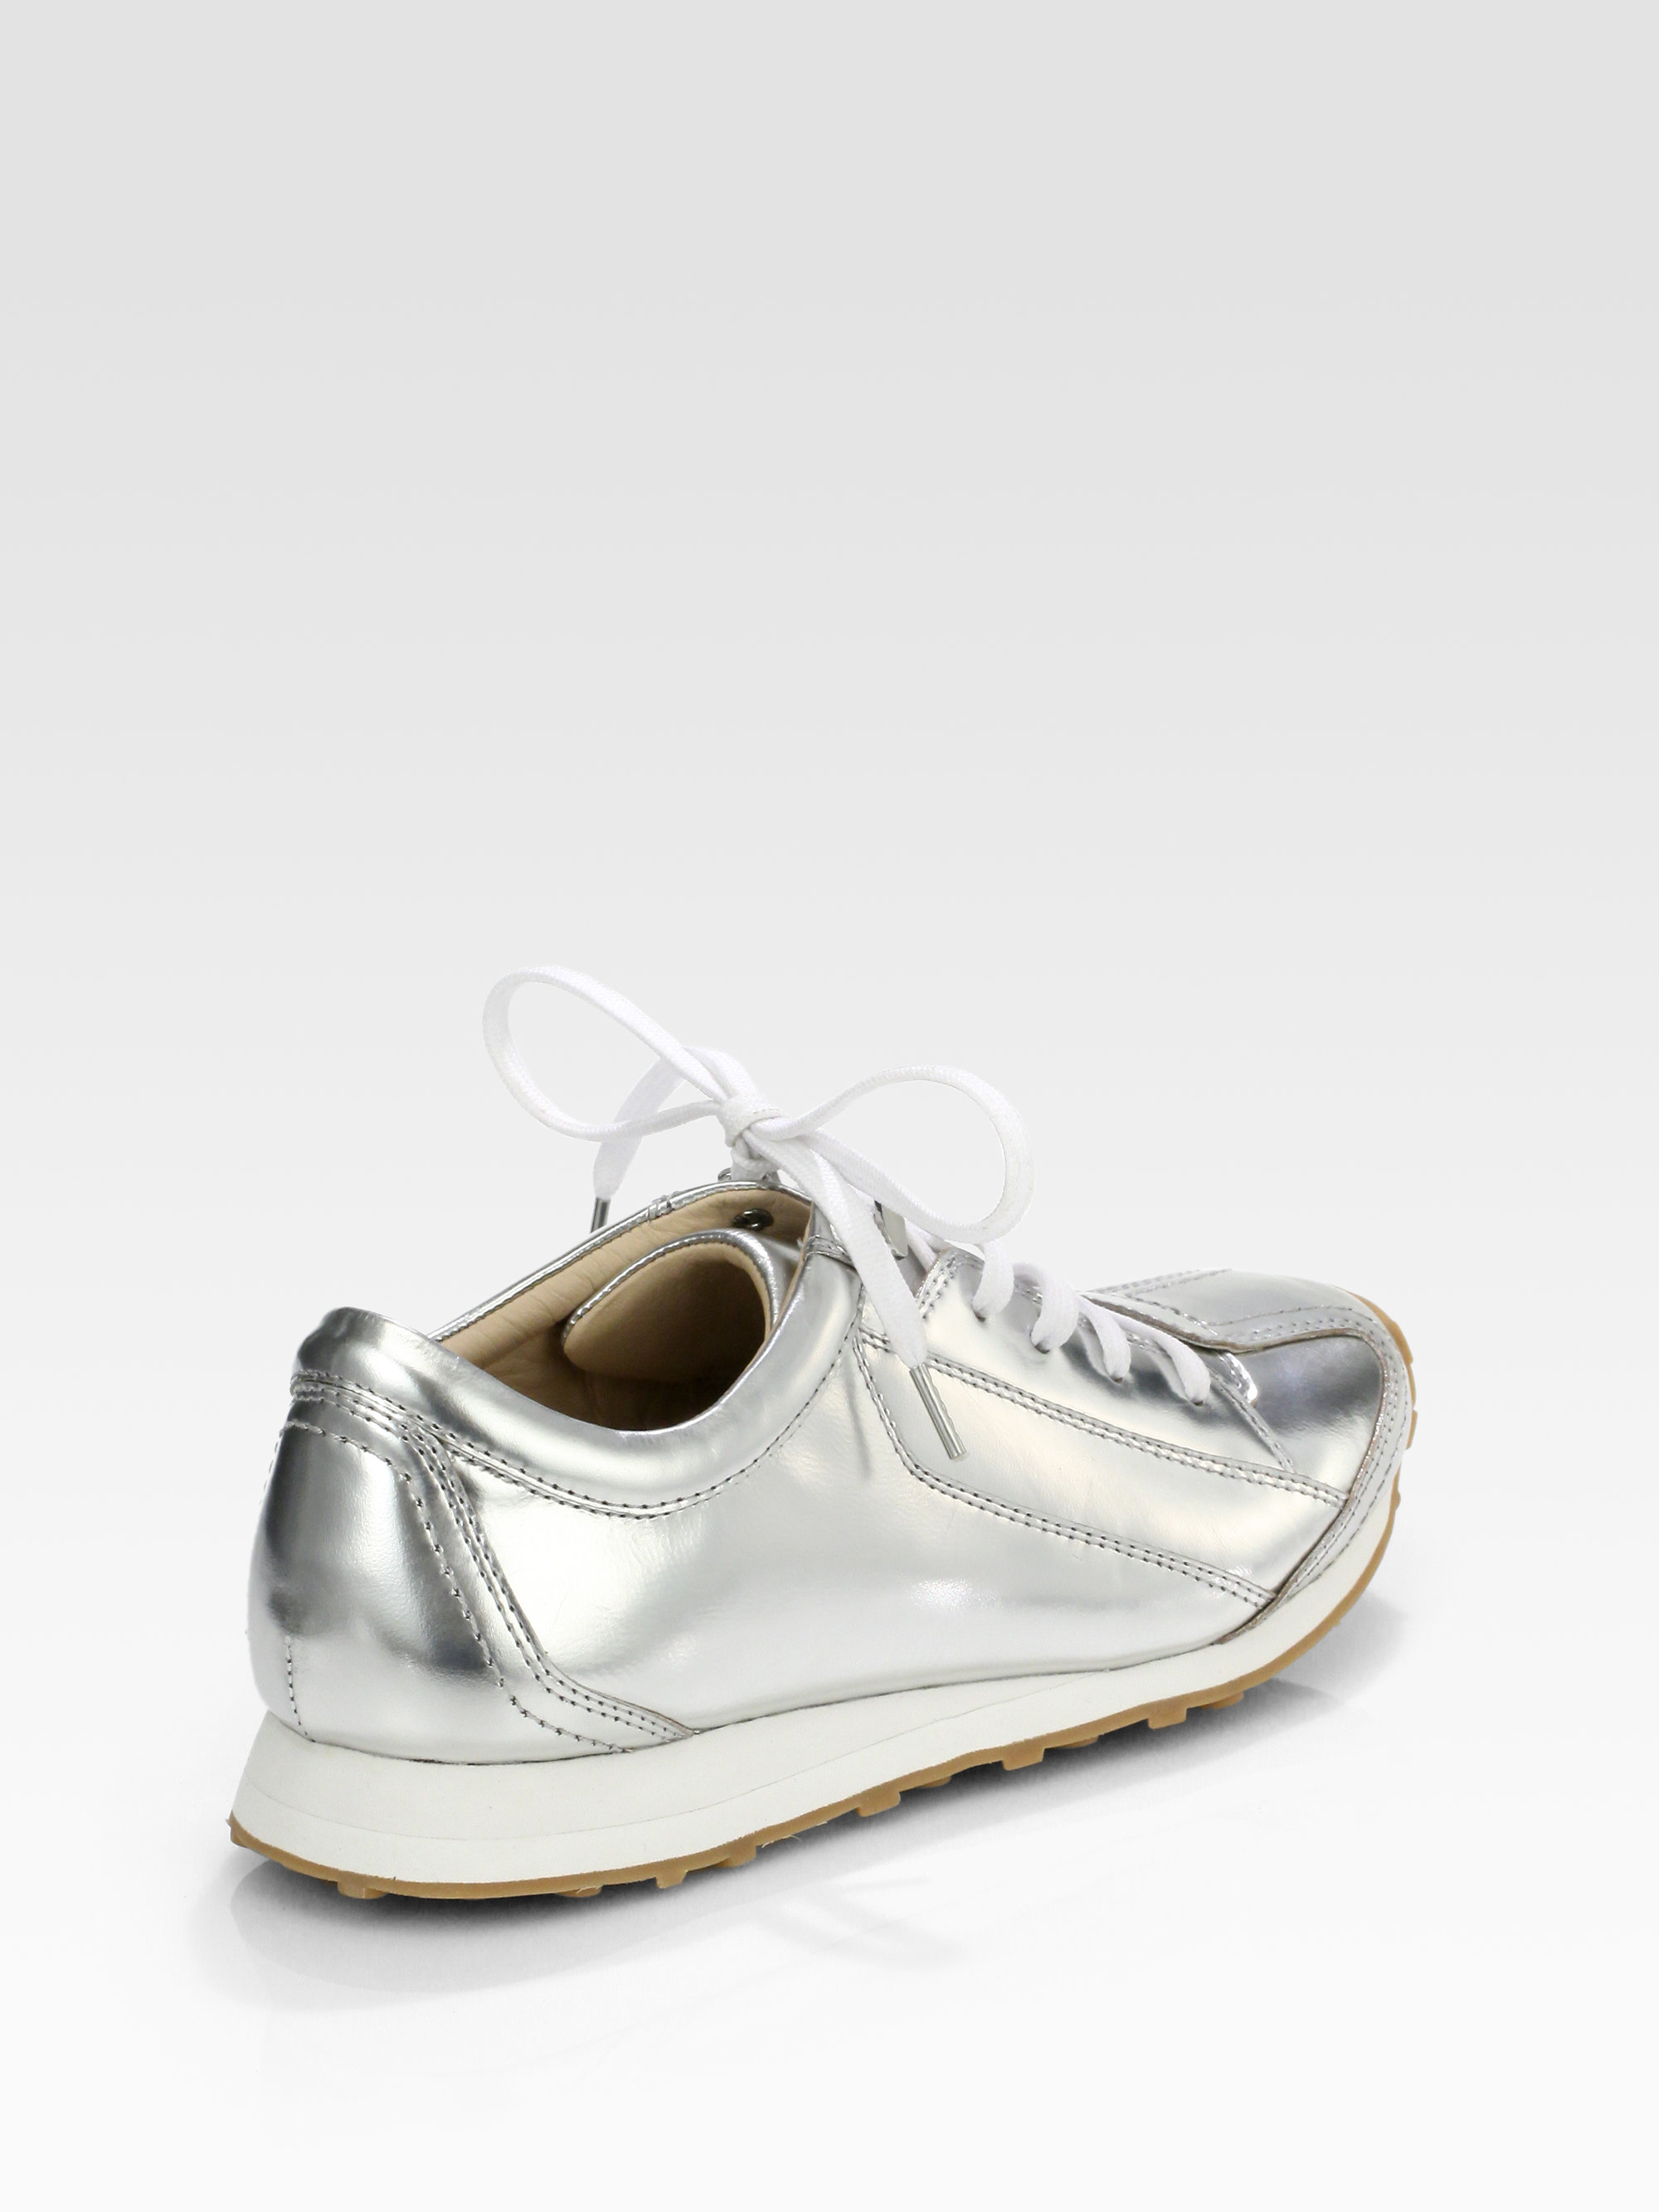 outlet online big discount cheap price Elizabeth and James Metallic Leather Sneakers for cheap cheap online sale cheap prices cheap online wrT80y